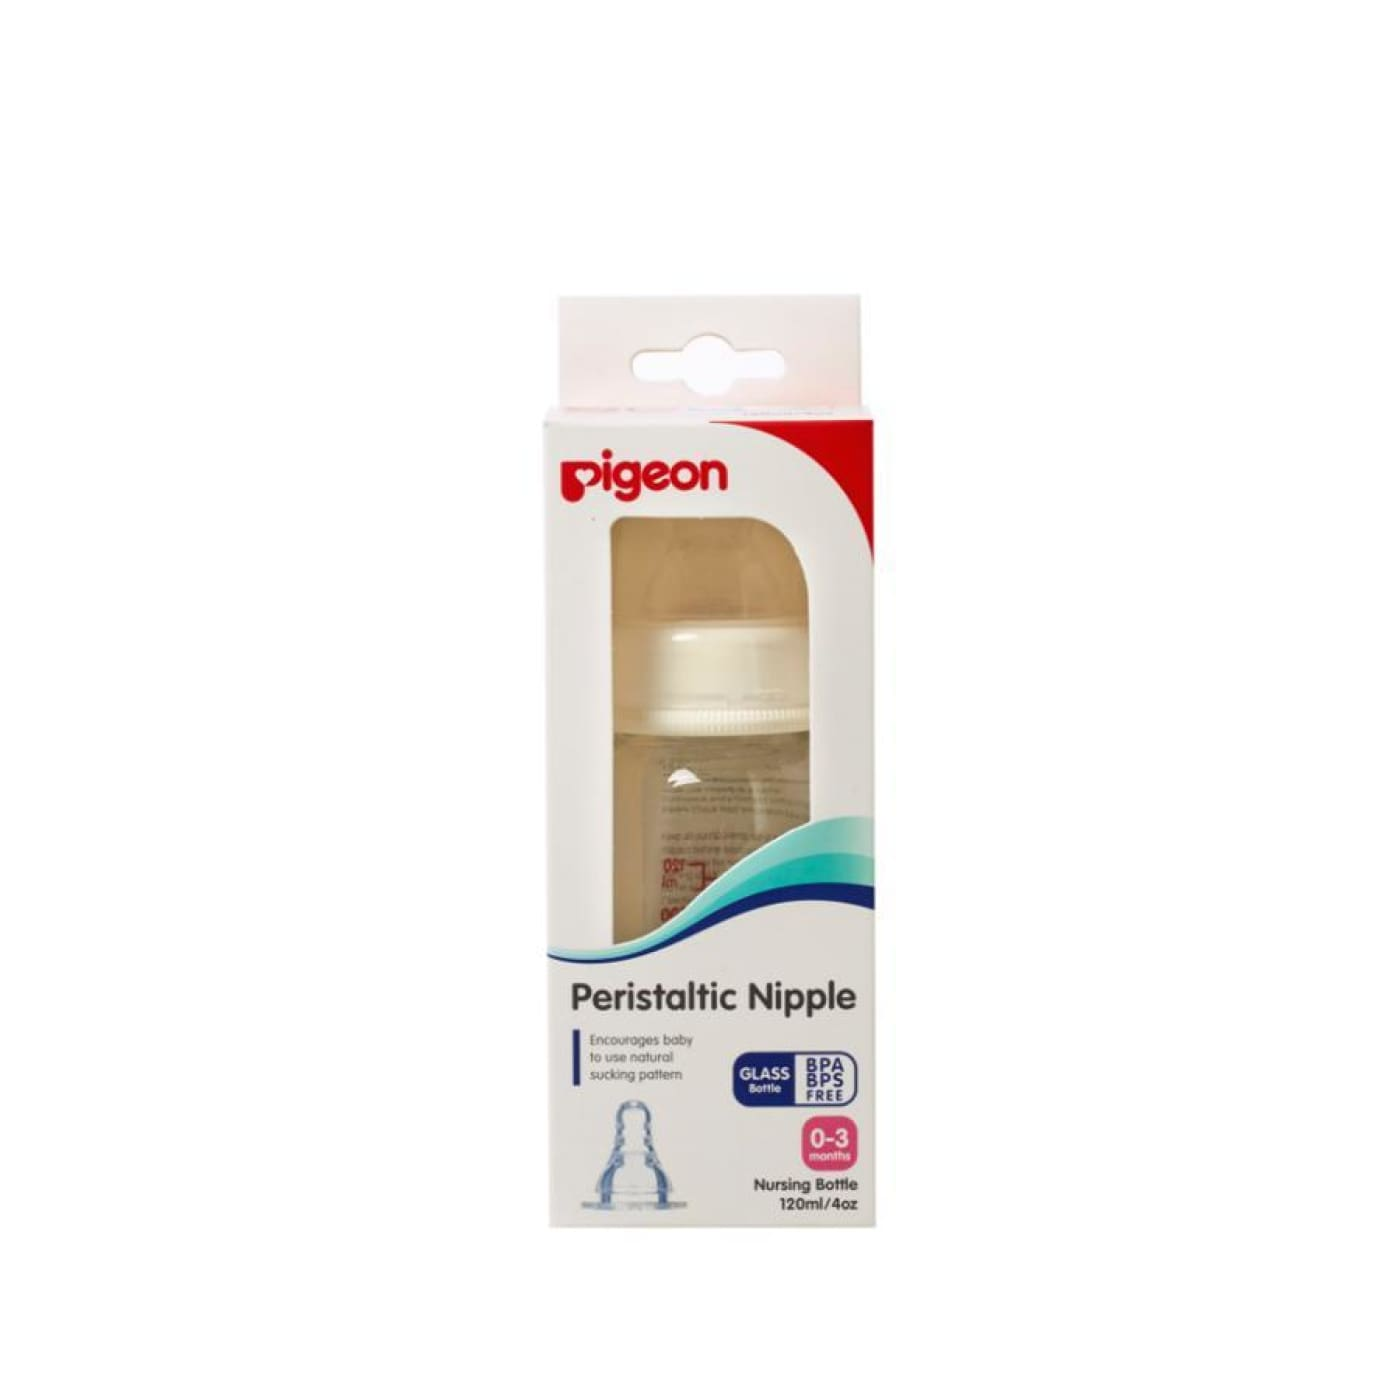 Pigeon Glass Bottle - Small Teat 120ML - 120ml - NURSING & FEEDING - BOTTLES/TEATS